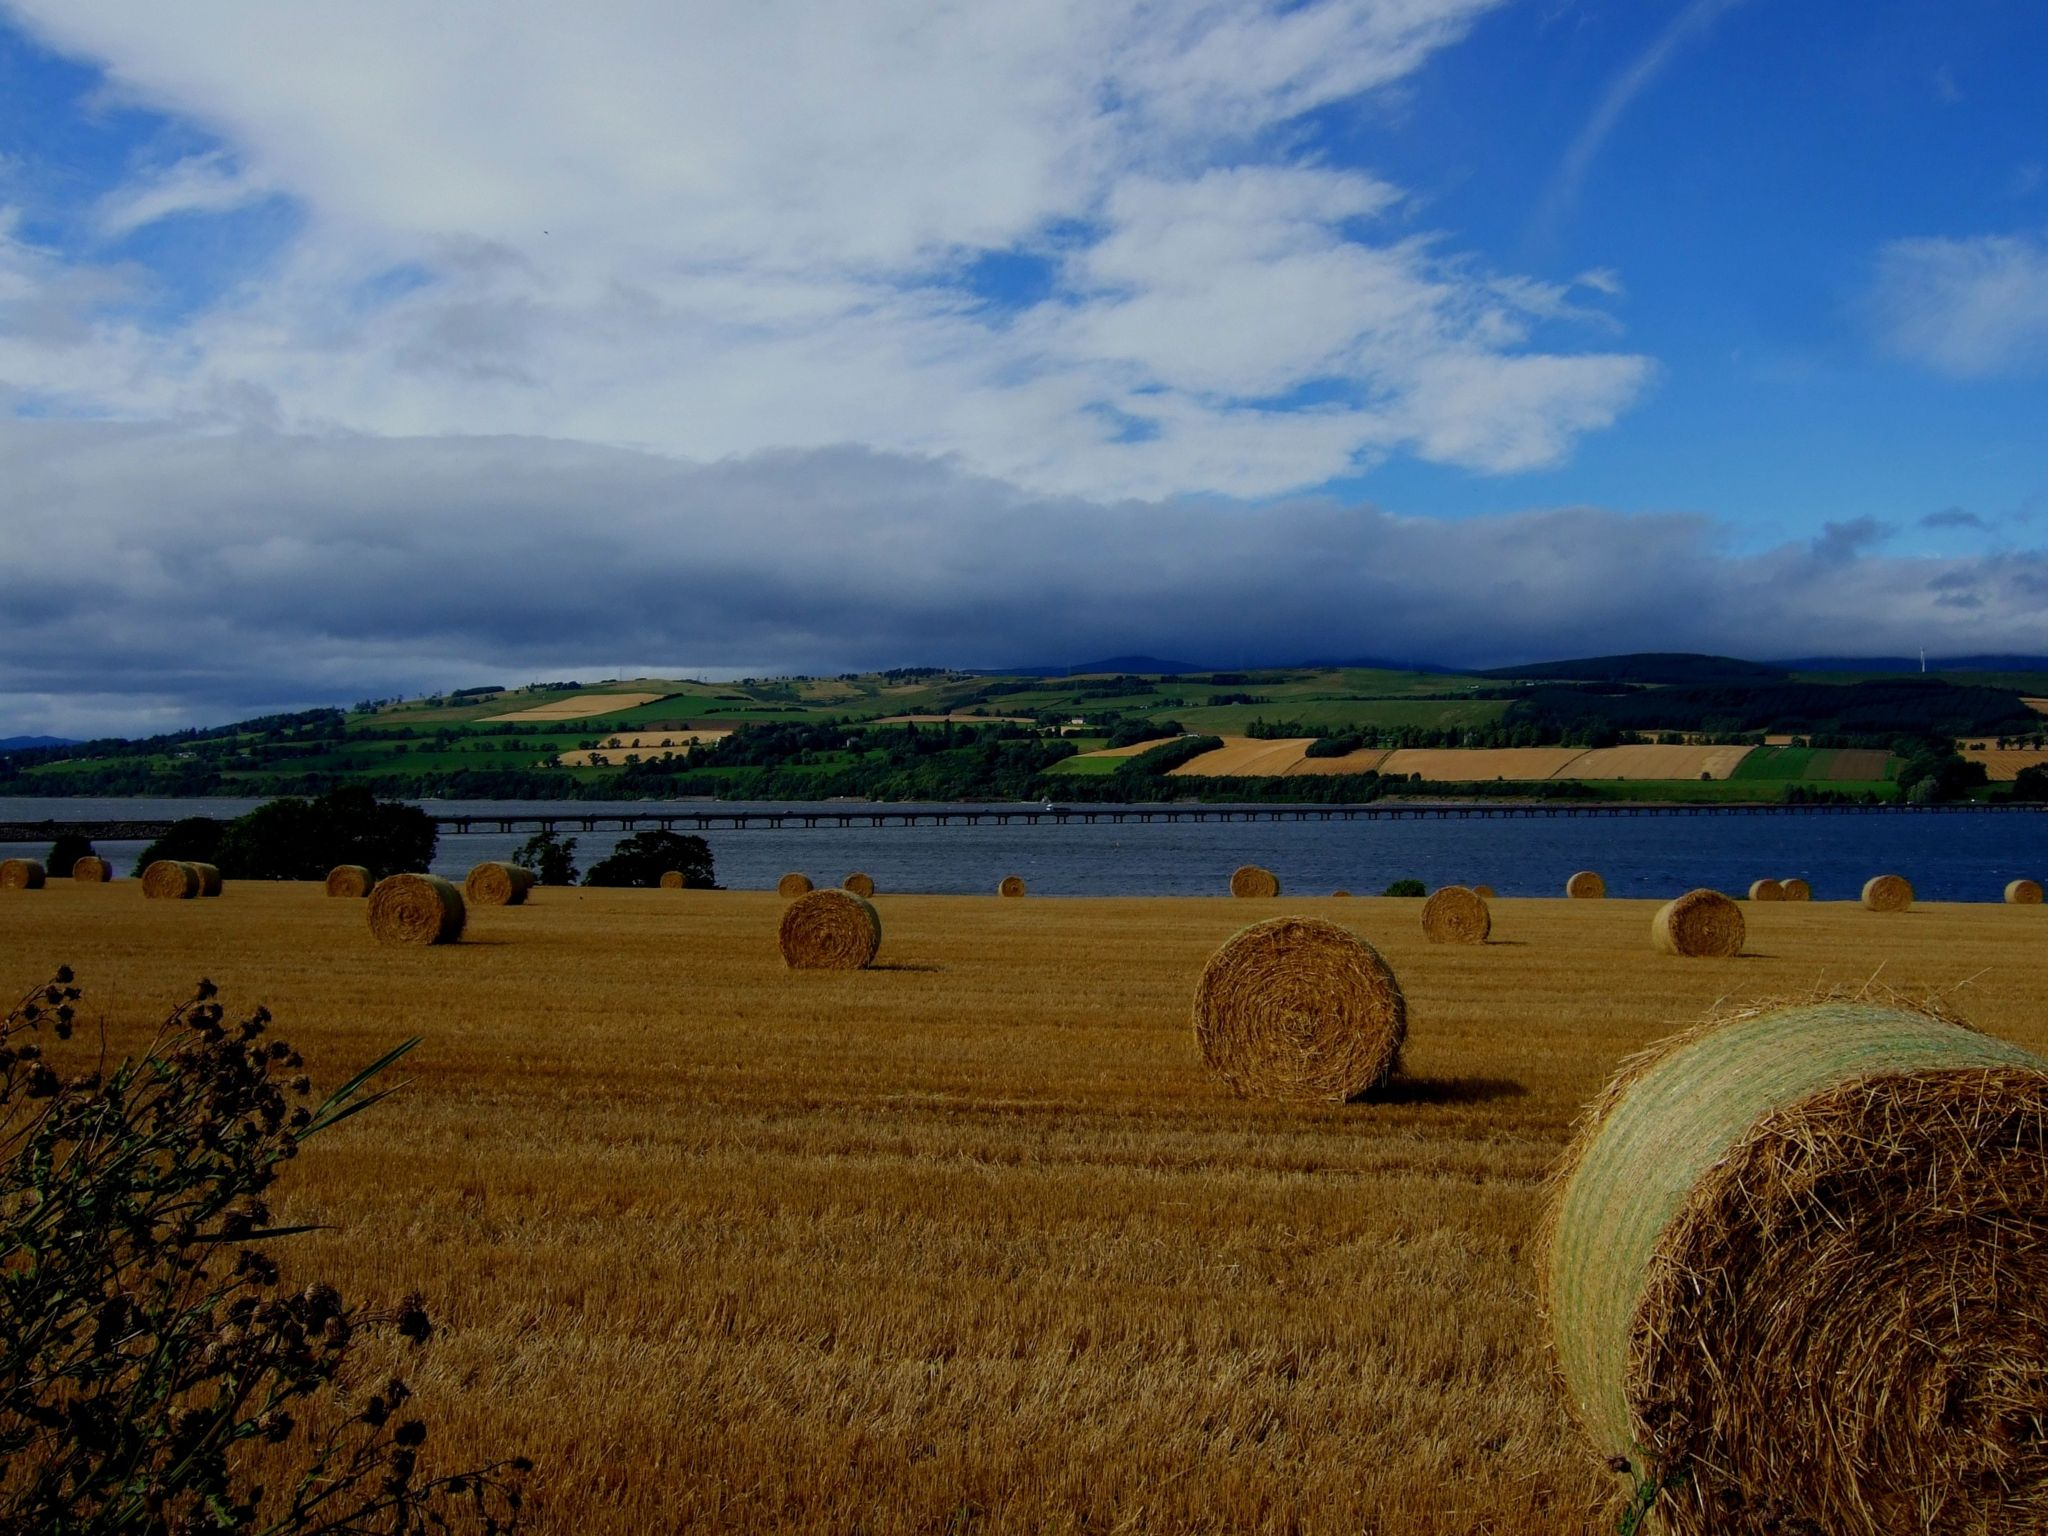 I was visiting the Black Isle at the weekend with my sister and stopped off to take a picture of haystacks with the Cromarty Bridge in the background. Susan Watt, from Glasgow